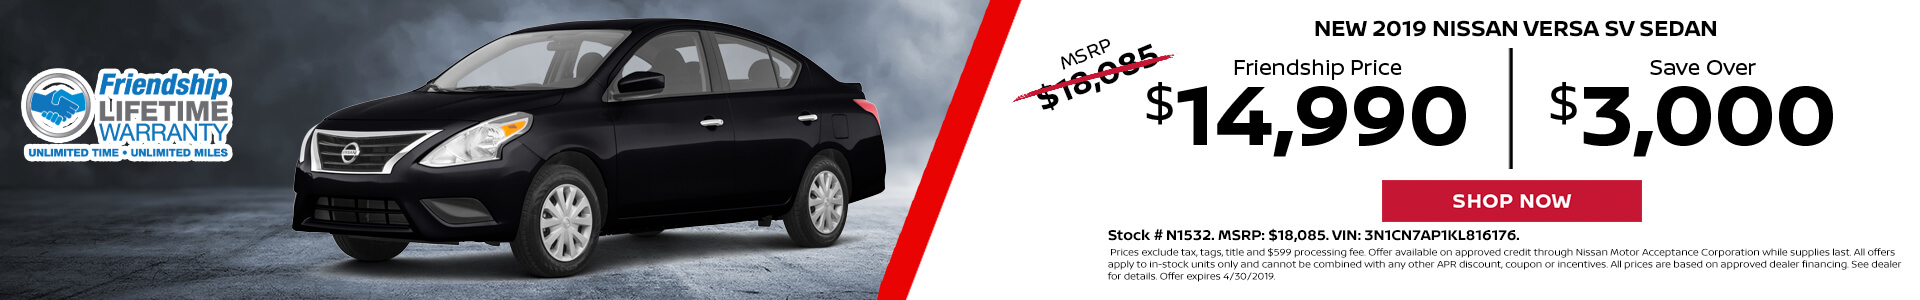 Nissan Versa $14,990 Purchase